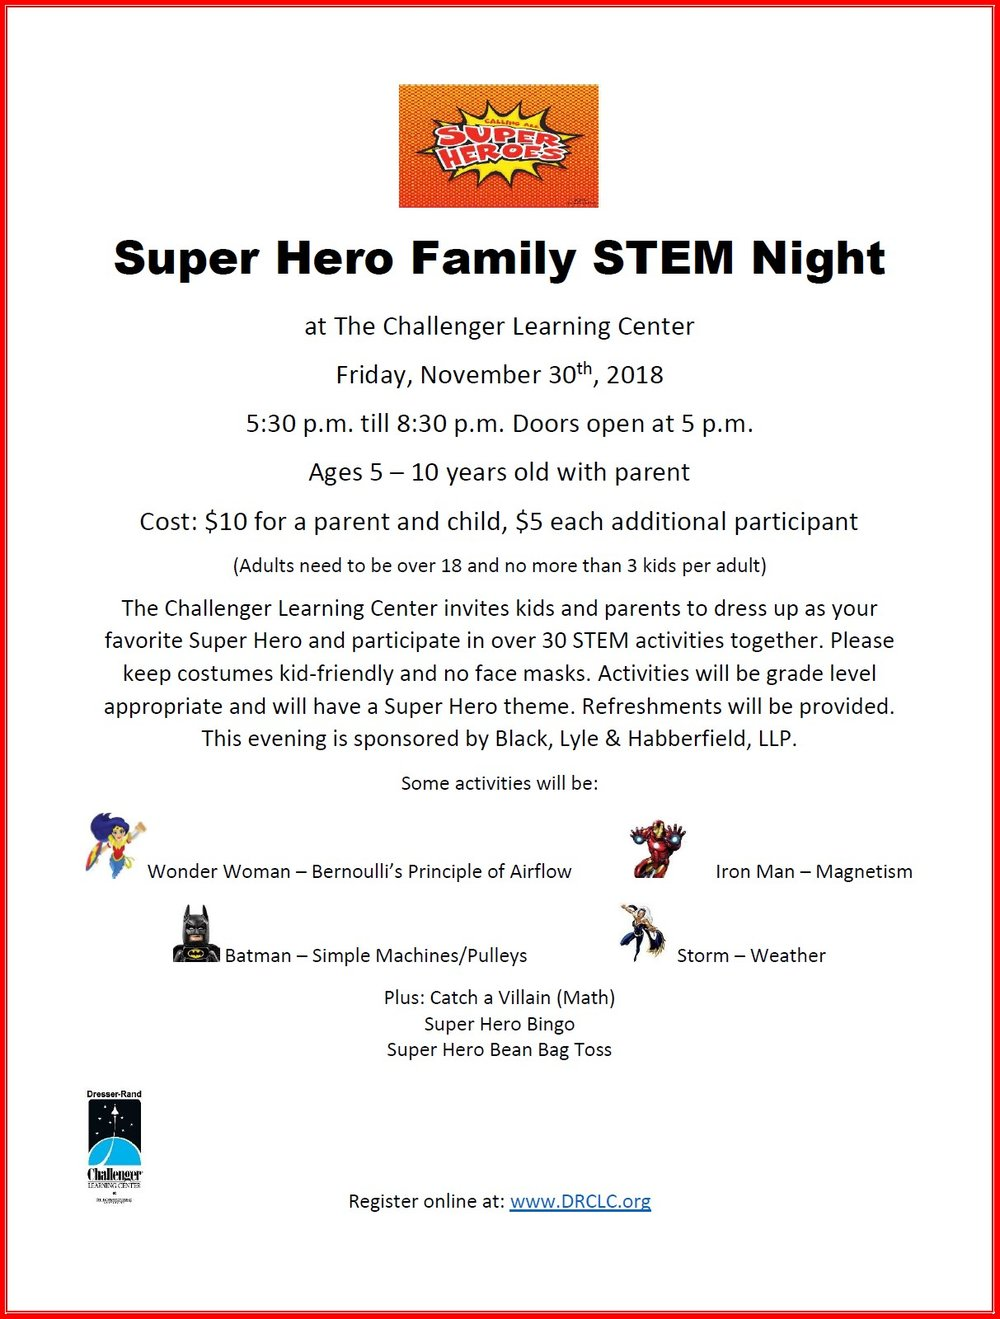 Super Hero Family STEM Night flyer.jpg